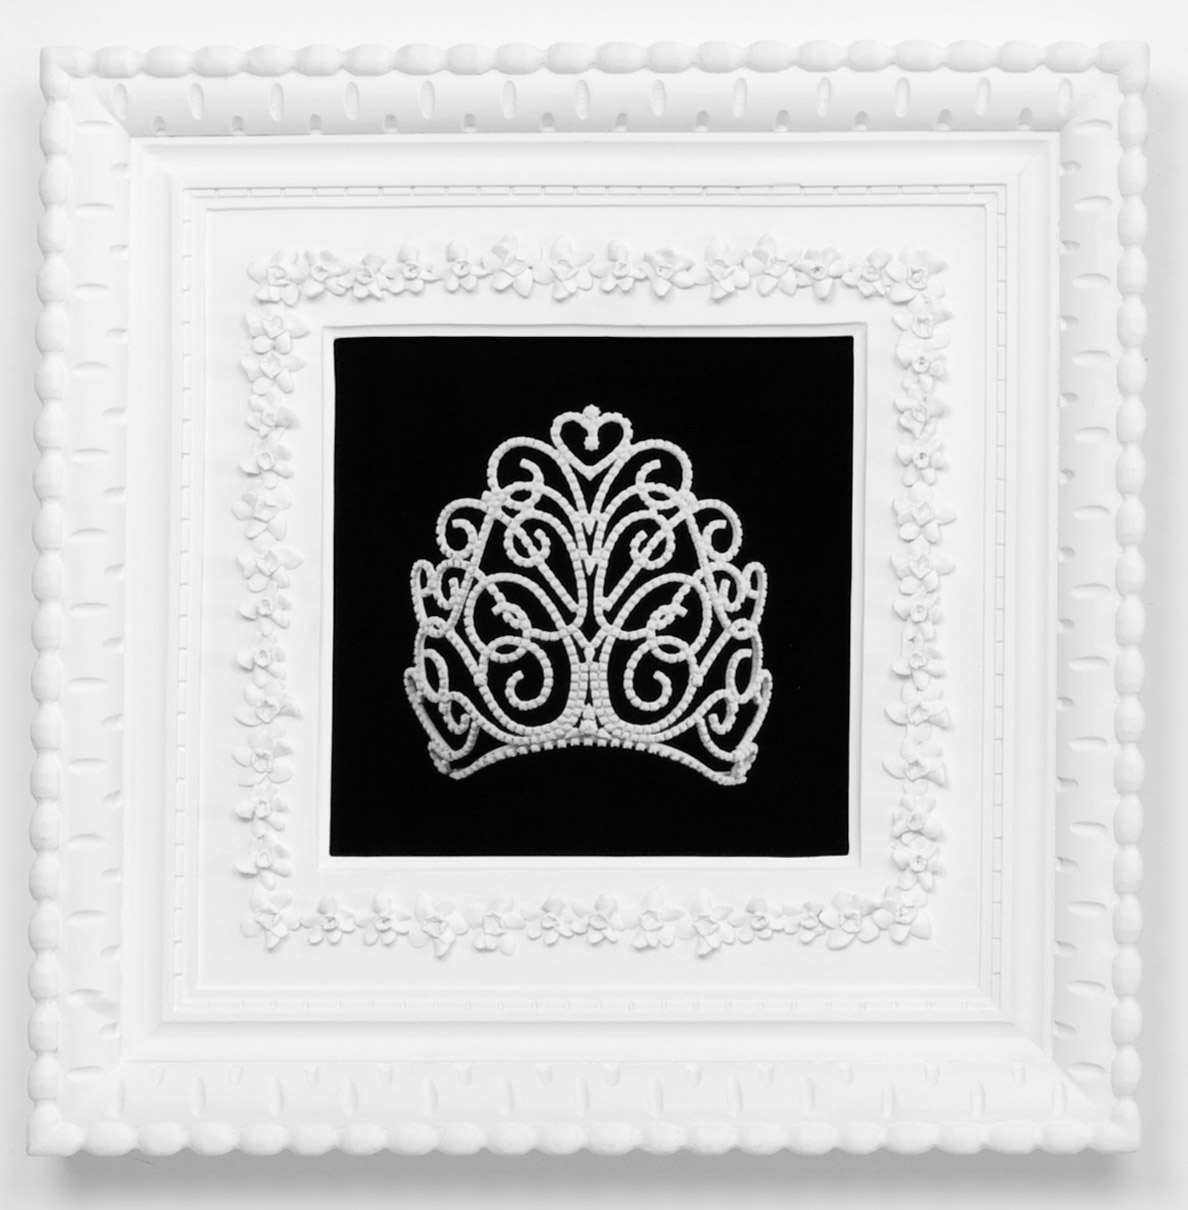 Small Dream Crown #8,  2009  Photograph in archival ink on watercolor paper, in artist's  Royal Narcissus Icing  frame  24 x 24 inches